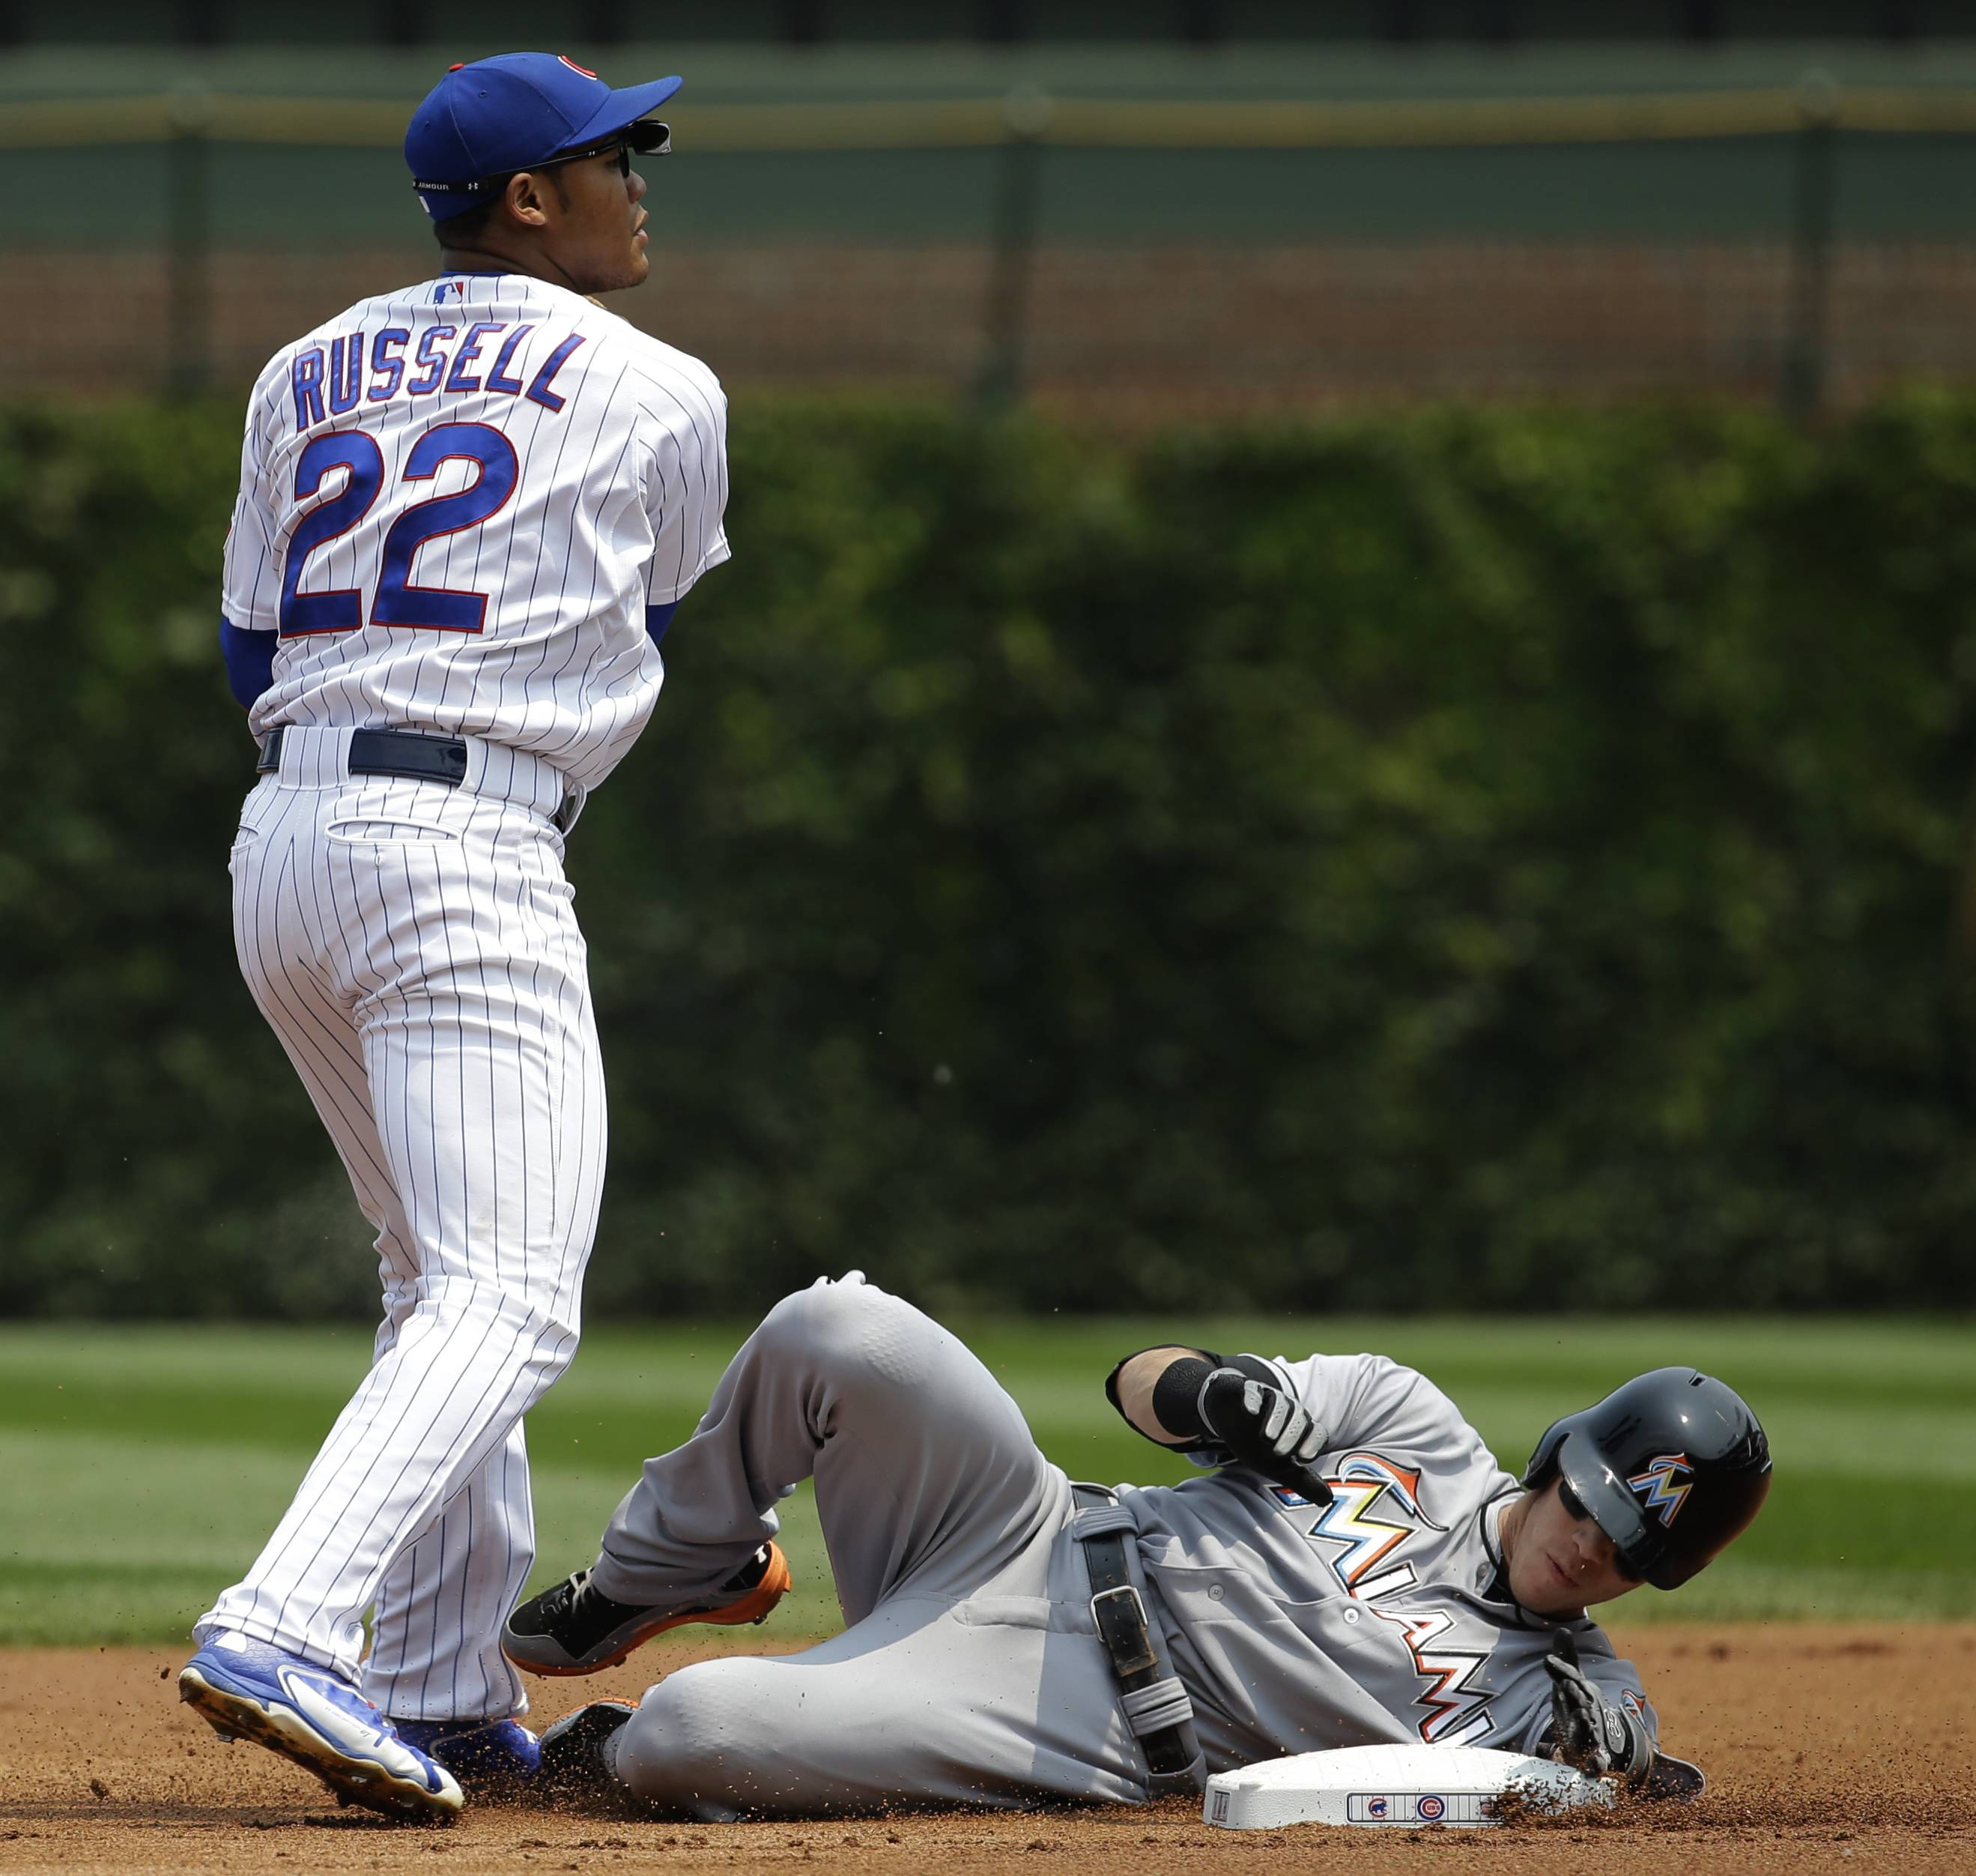 Miles: Cubs slumping at the plate